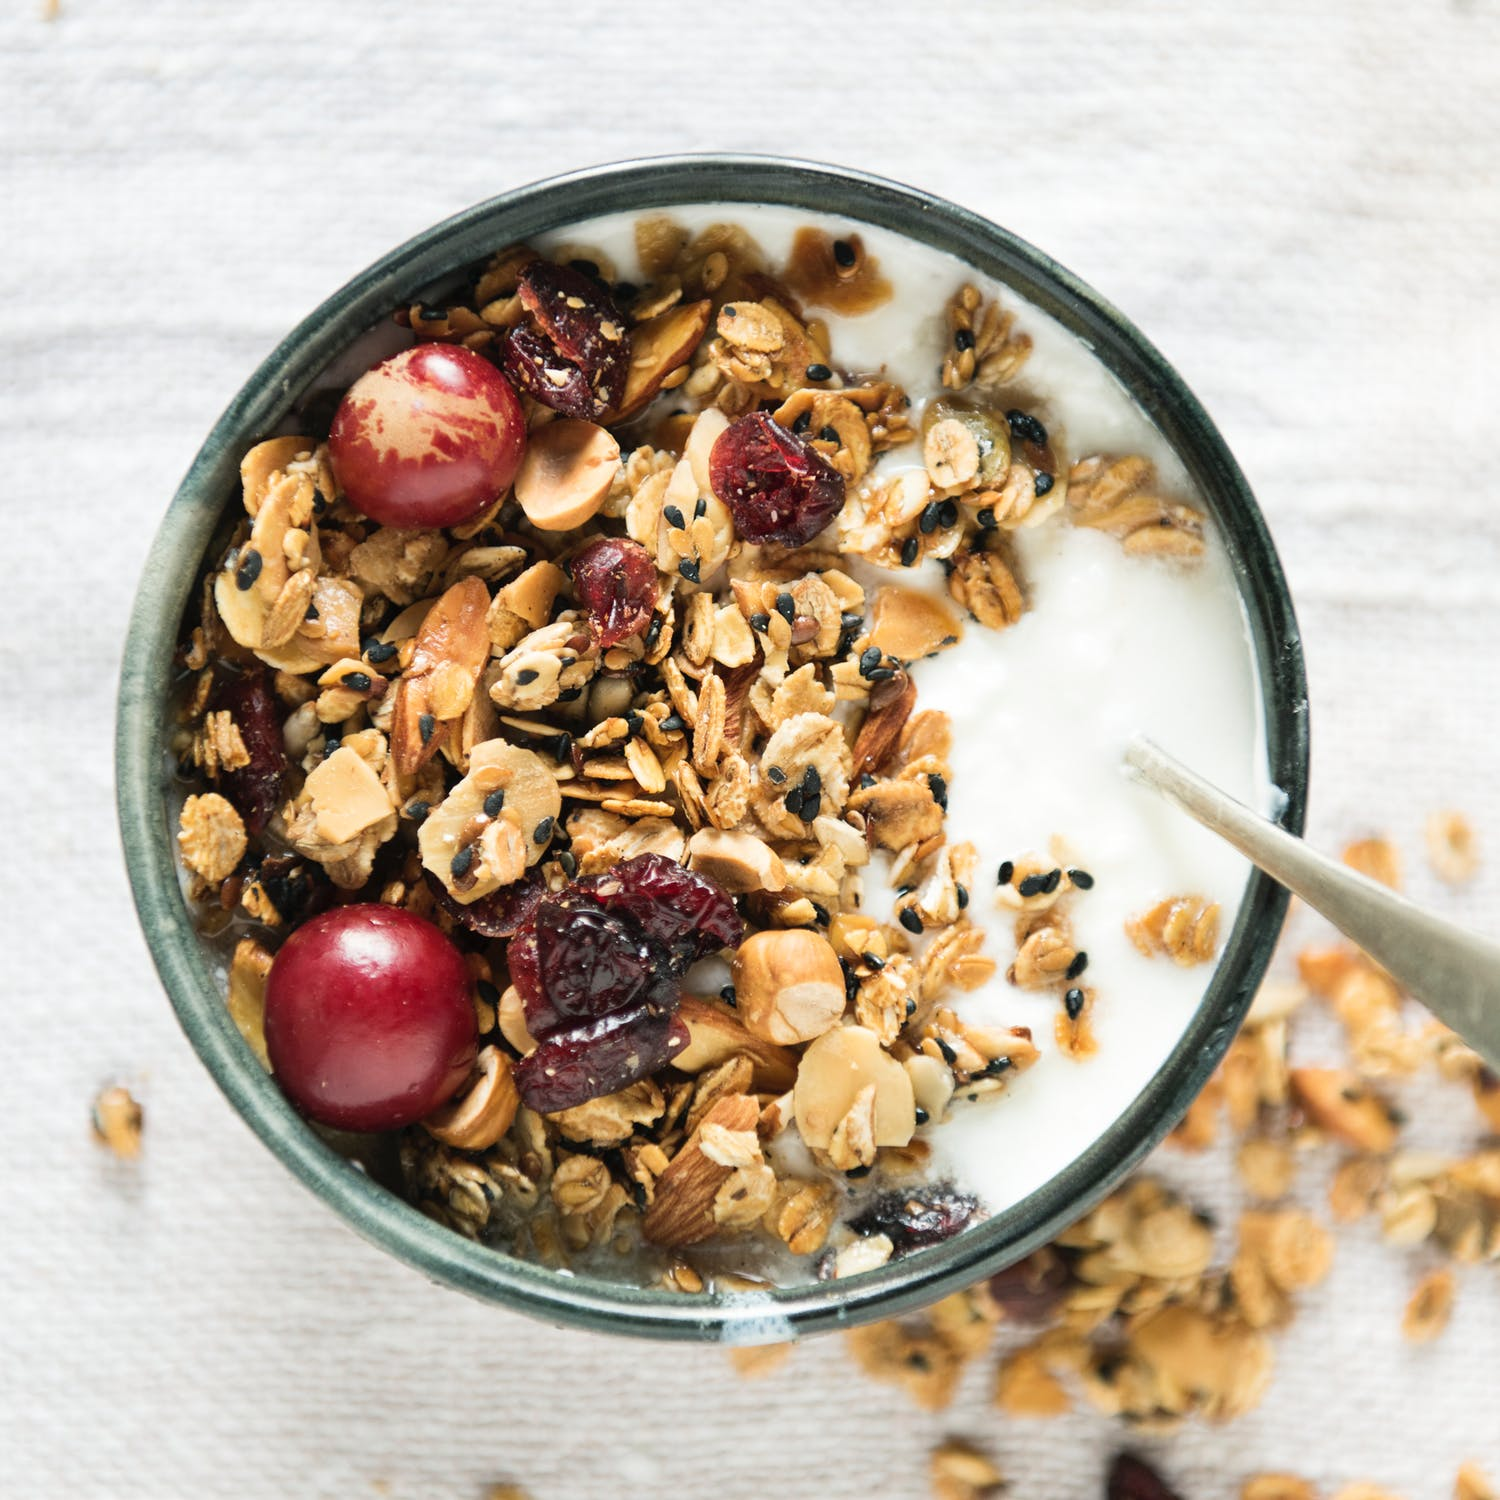 Yogurt with oats, nuts, and berries